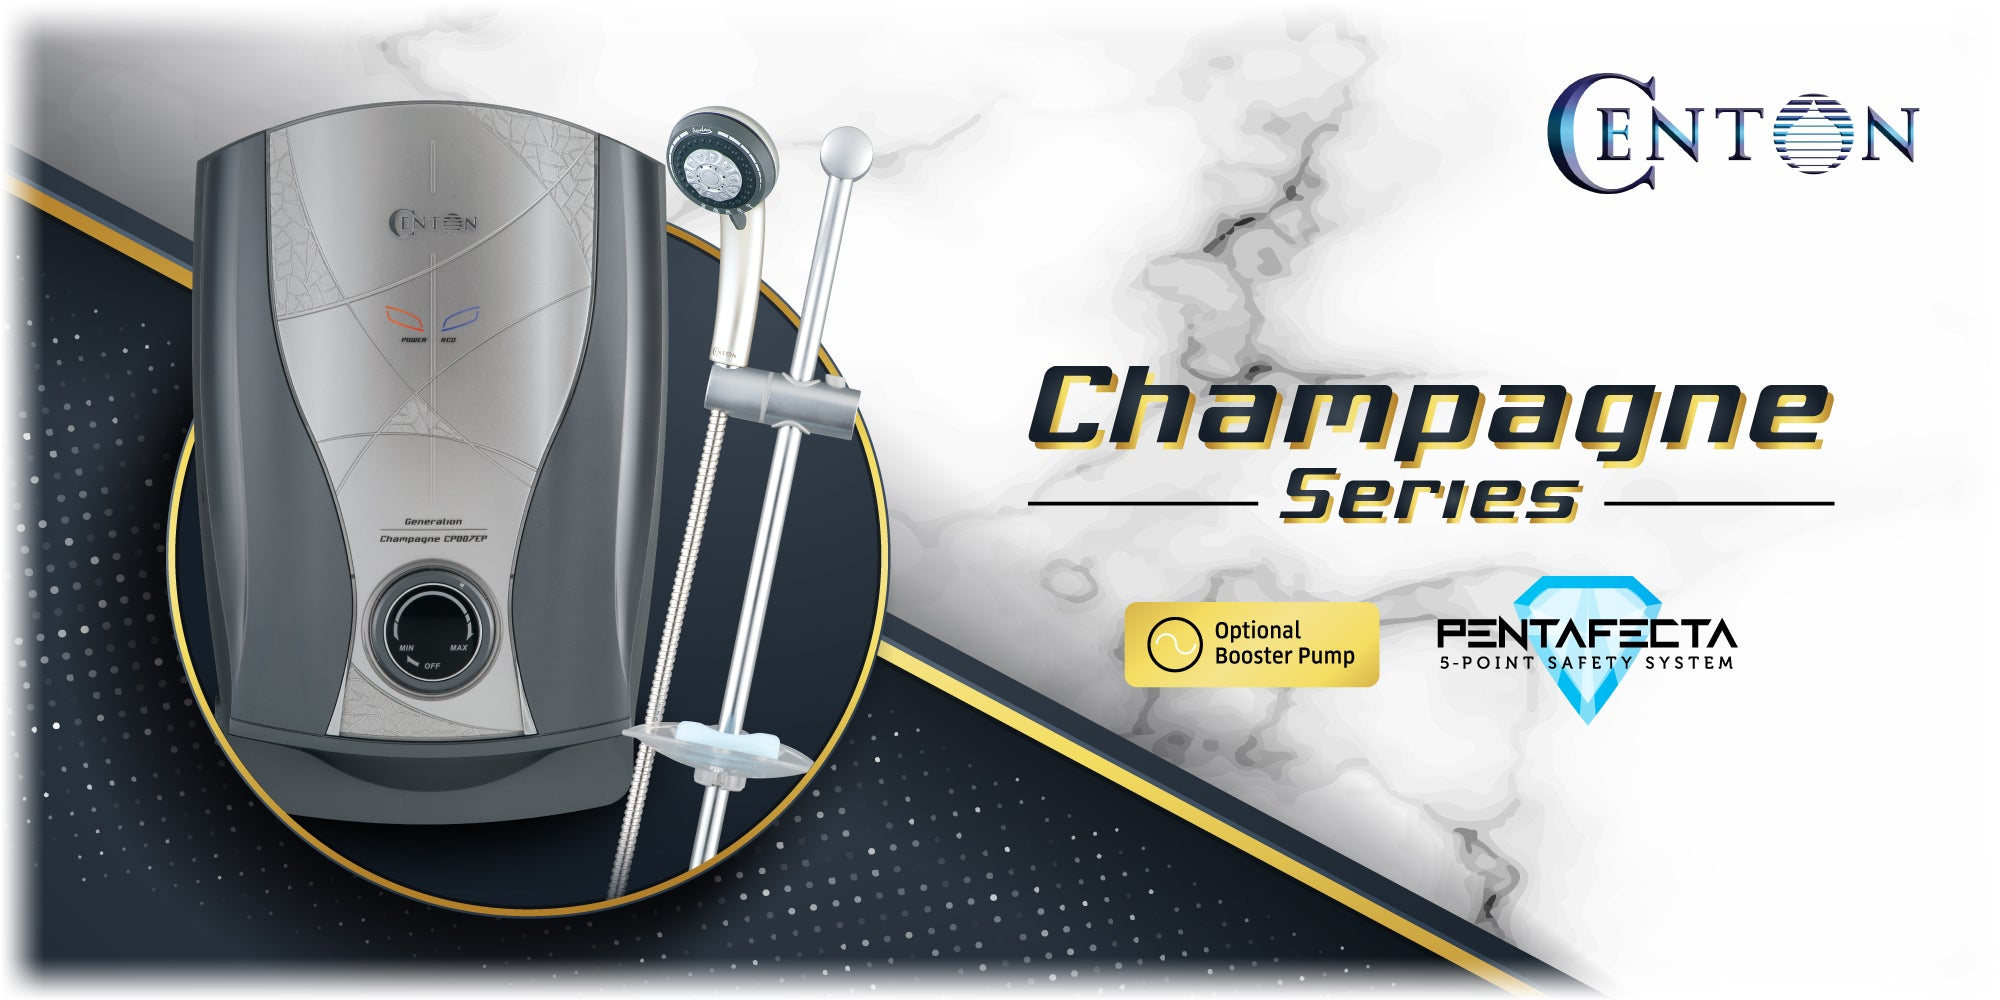 CENTON Champagne Series with PentaFecta Safety System | Solid Grey Pearl